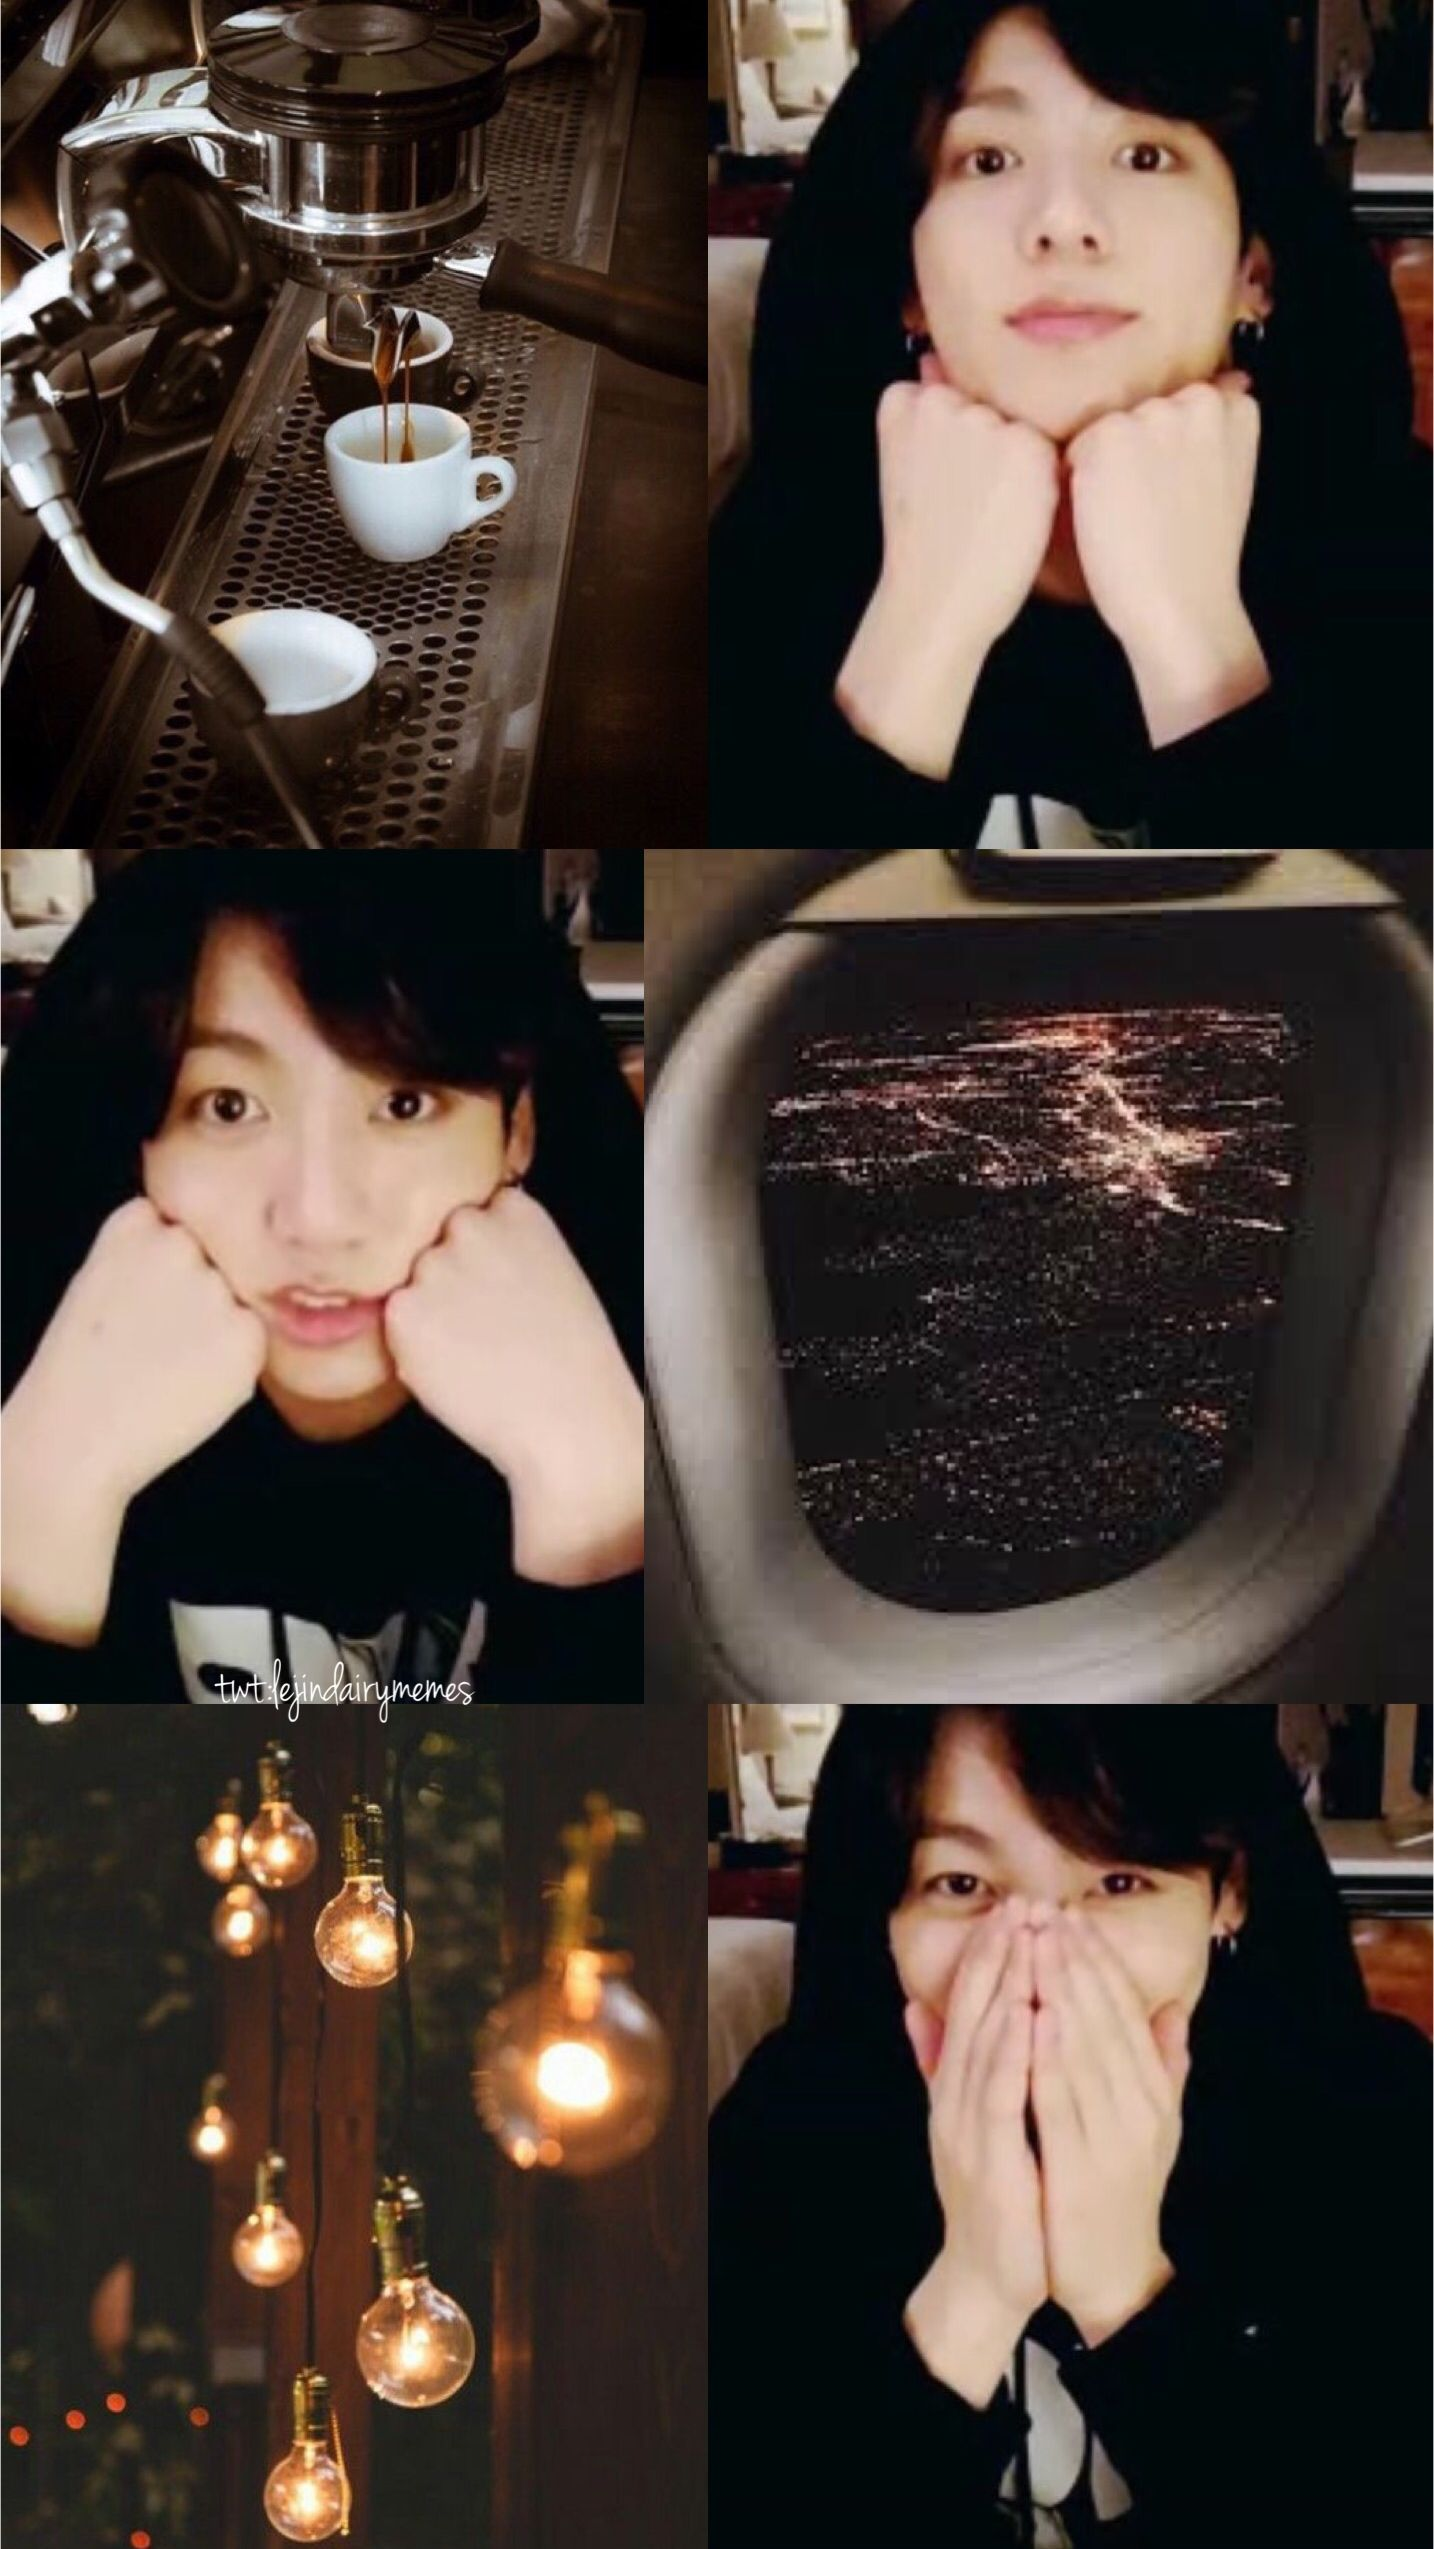 Bts Jungkook Wallpaper Aesthetic Brown By Lejindairymemes Bangtan